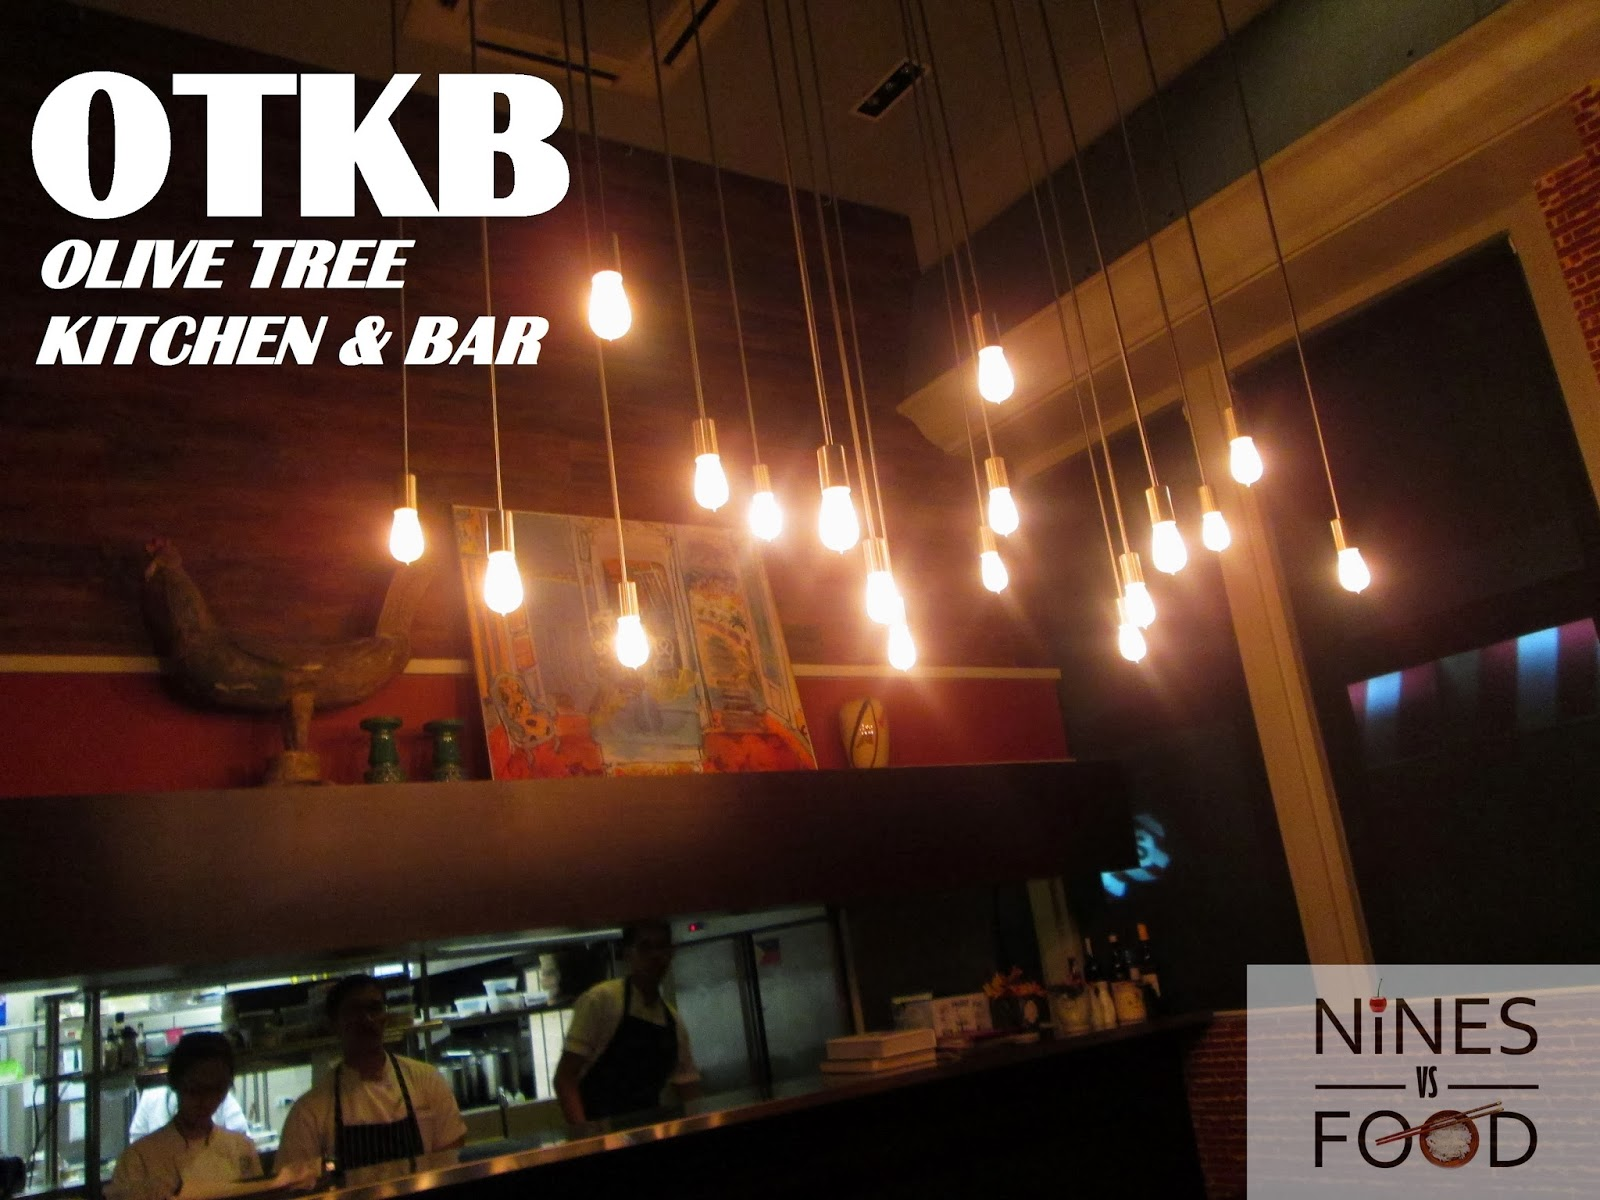 Nines vs. Food - Olive Tree Kitchen and Bar-1.jpg